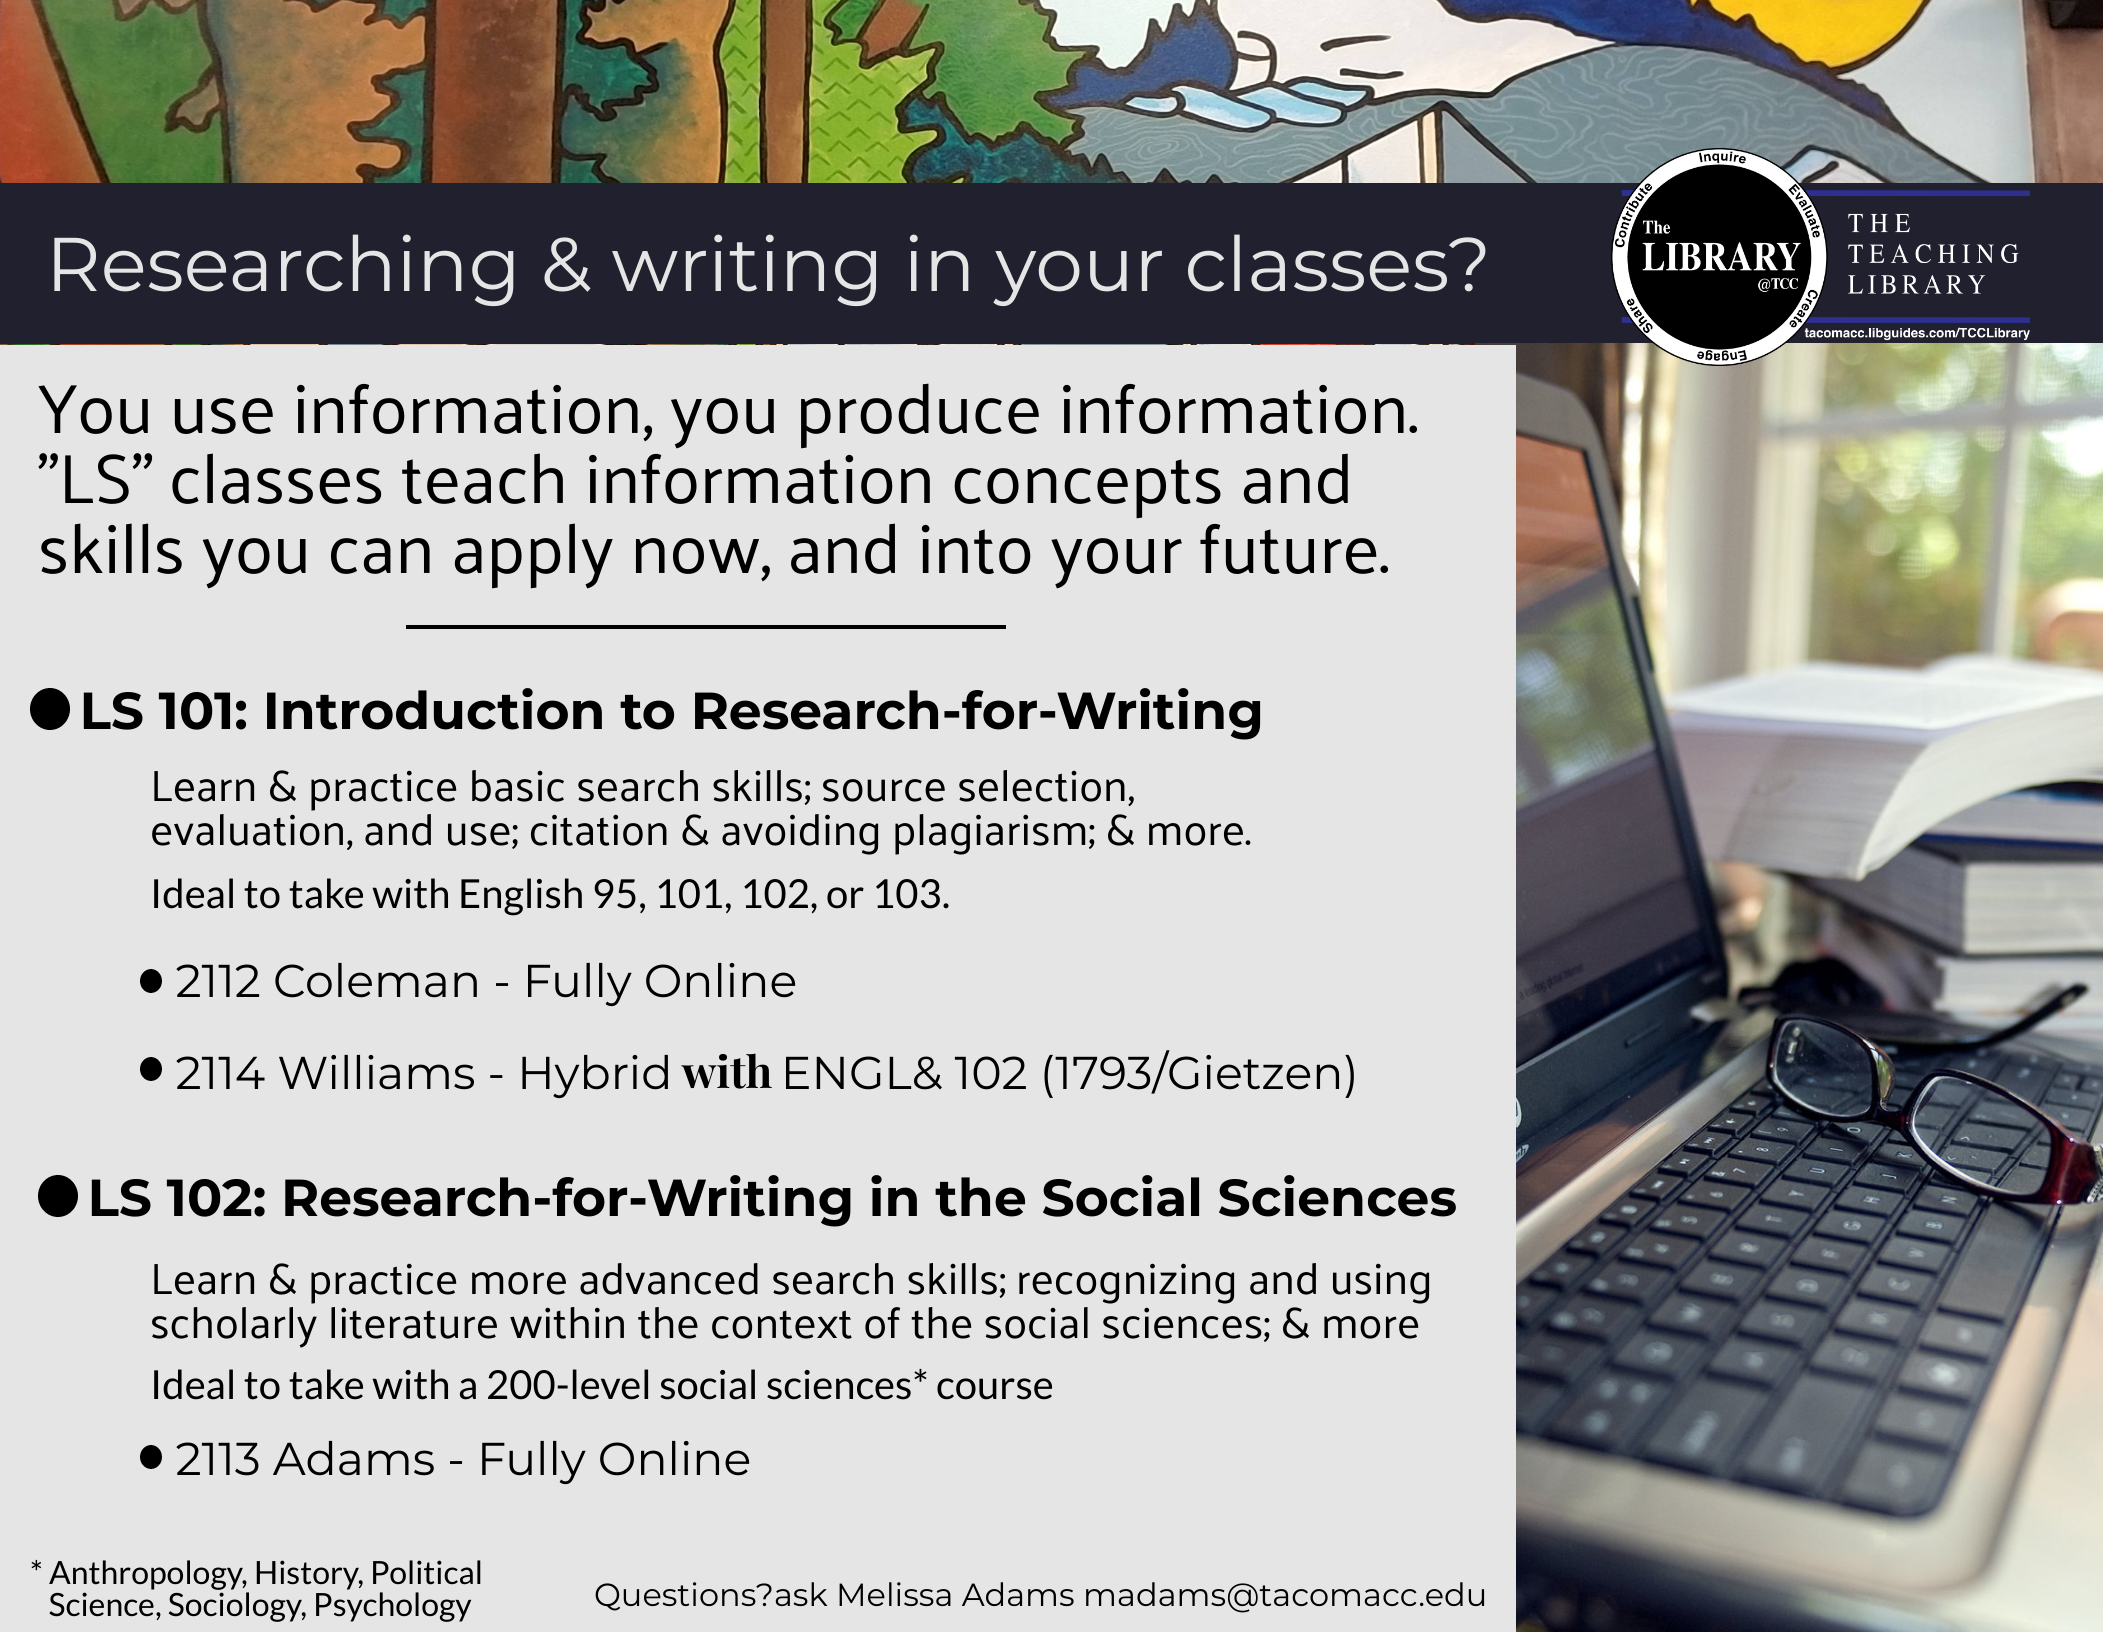 Flier for courses LS 101 and LS 102 Researching and Writing in your classes? You use information, you produce information. LS classes teach information concepts and skills you can apply now and into your future. LS 101 is an introduction to Research for writing Item number 2112 coleman, fully online Items number 2114 williams, is hybrid, paired with ENGL 102, item number 1793 Gietzen LS 102 is research for writing in the social sciences Item number 2113 adams, fully online